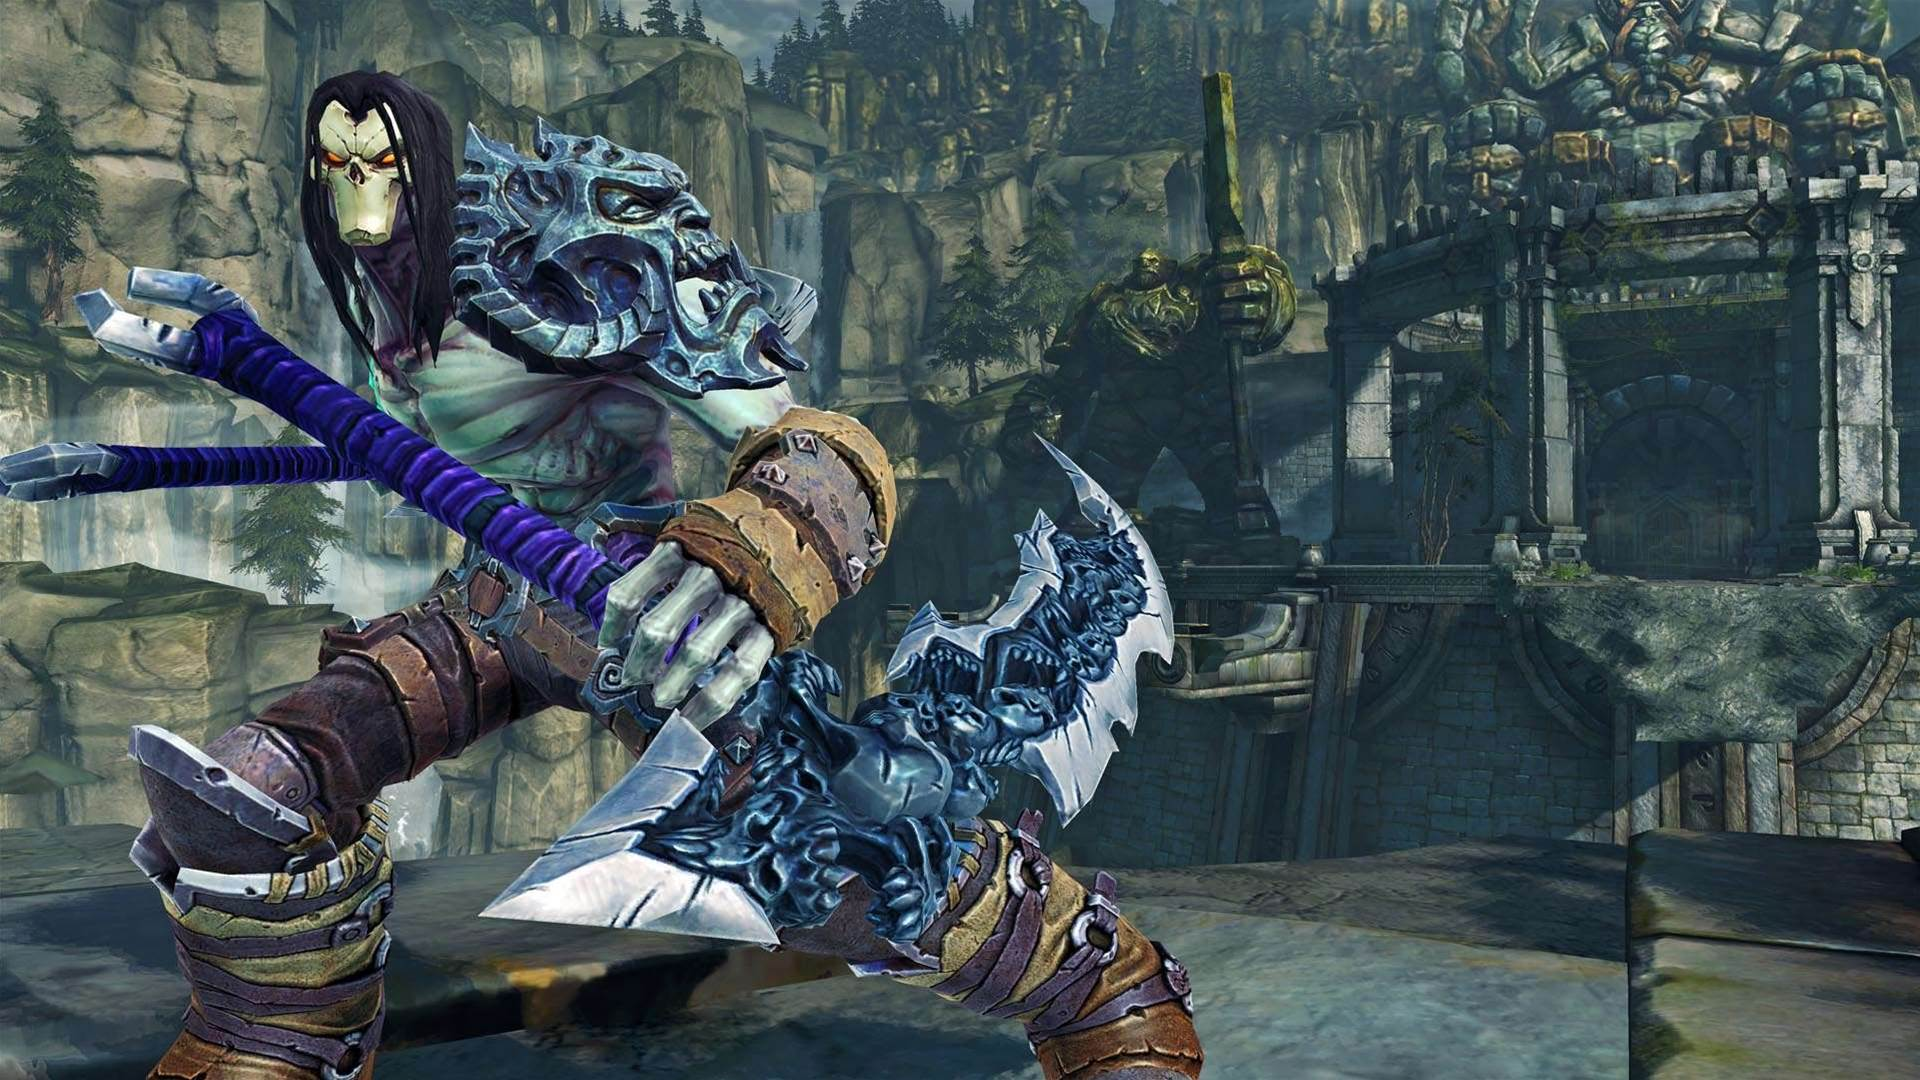 Darksiders II review - fun on PC, despite itself